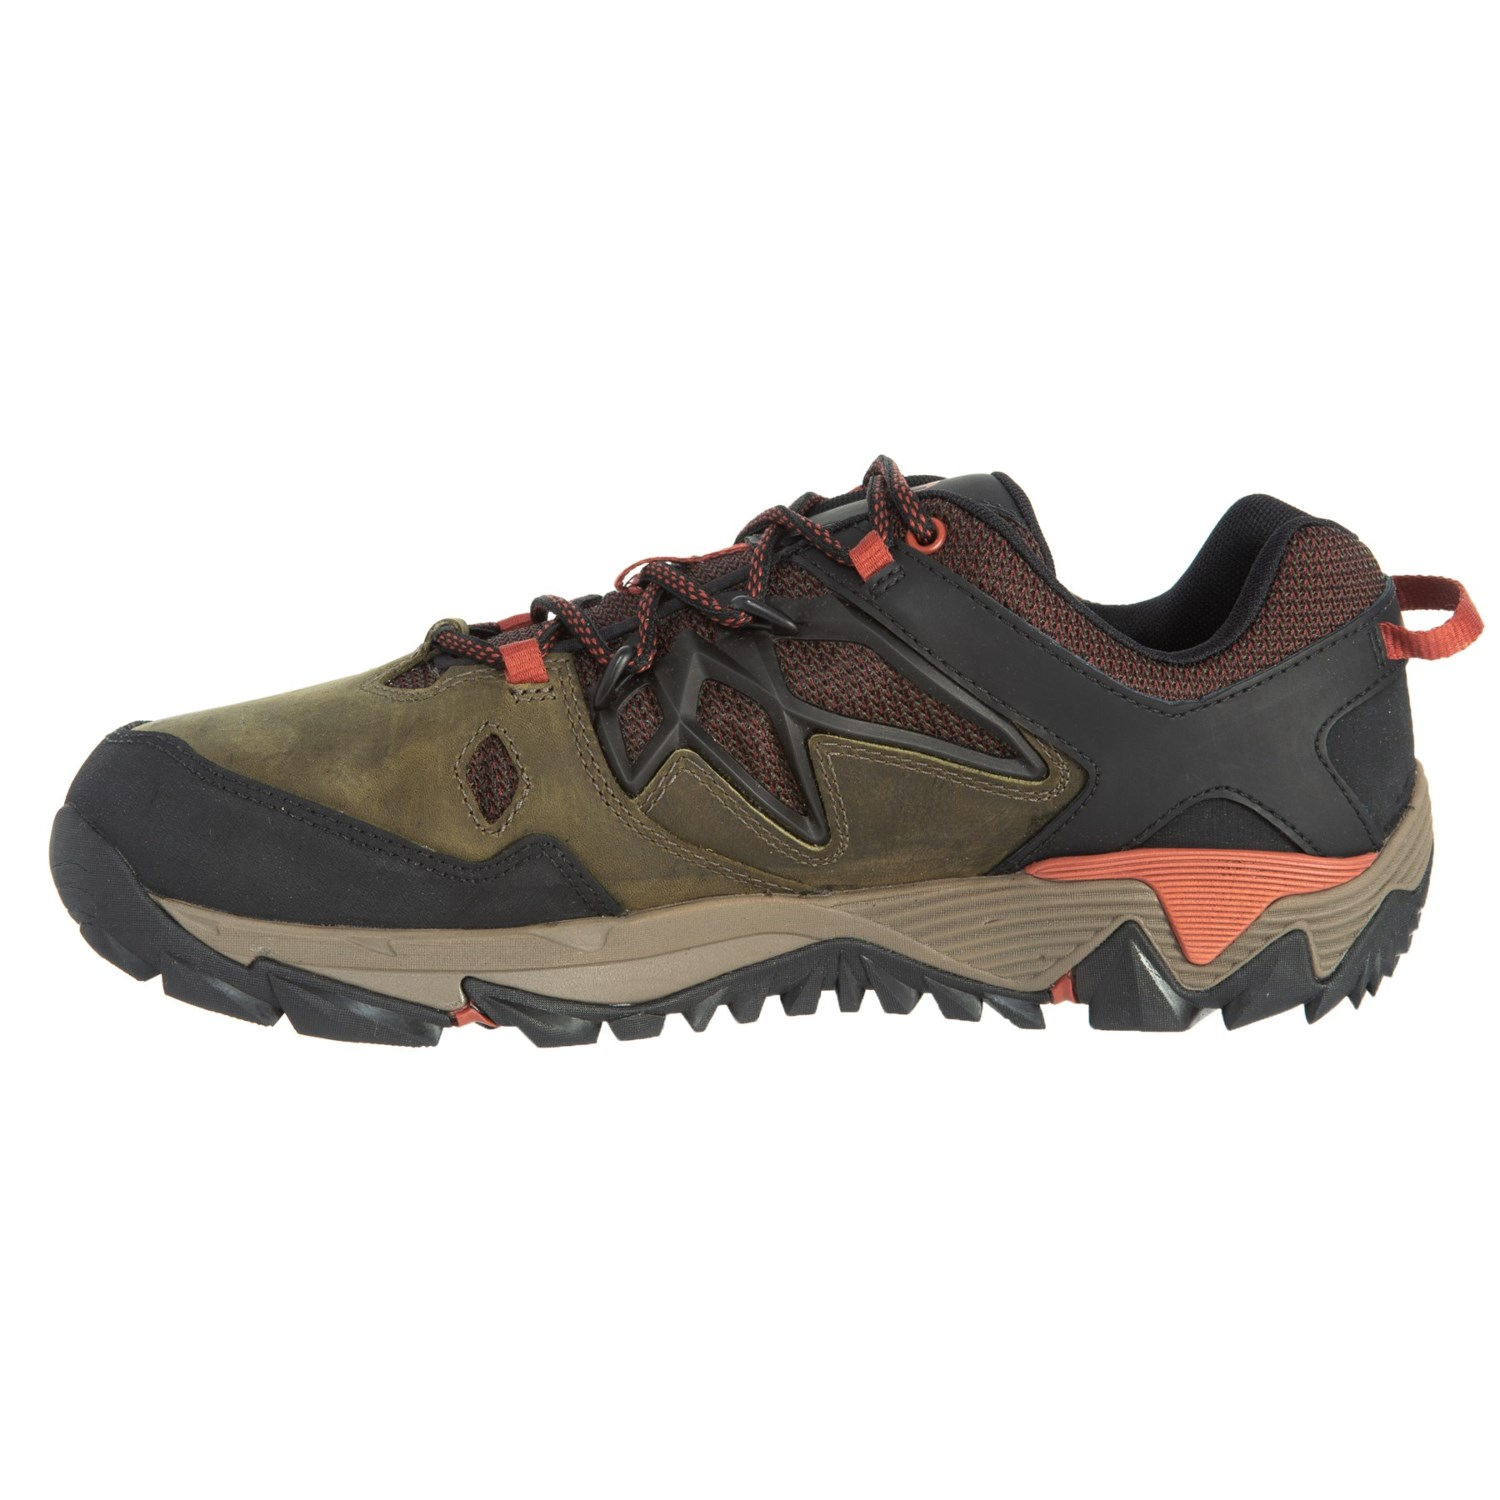 b72f41d28747 Merrell All Out Blaze 2 Hiking Shoes - Waterproof (For Men)